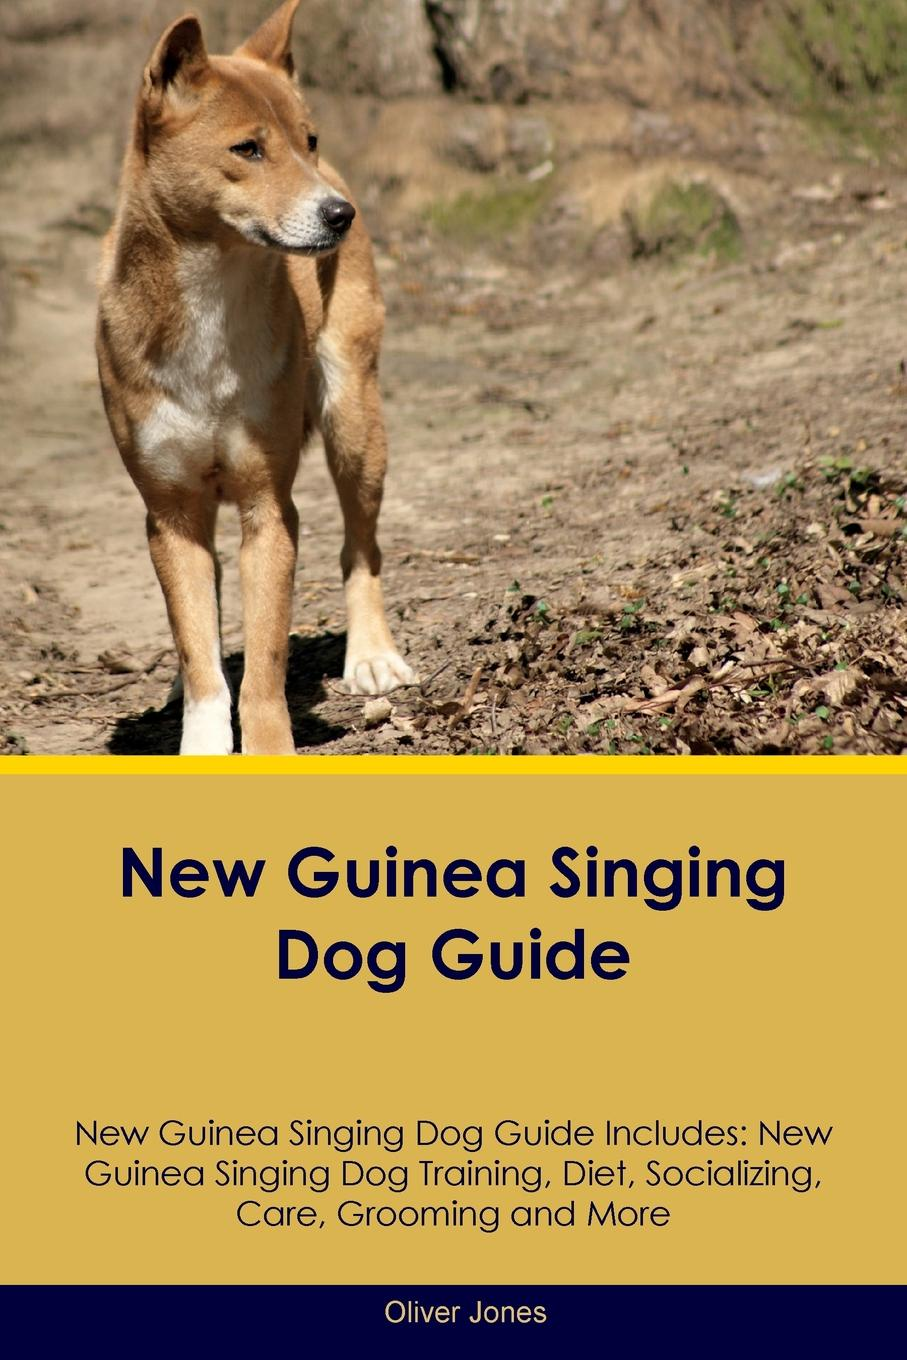 Oliver Jones New Guinea Singing Dog Guide New Guinea Singing Dog Guide Includes. New Guinea Singing Dog Training, Diet, Socializing, Care, Grooming, Breeding and More a guinea pig romeo